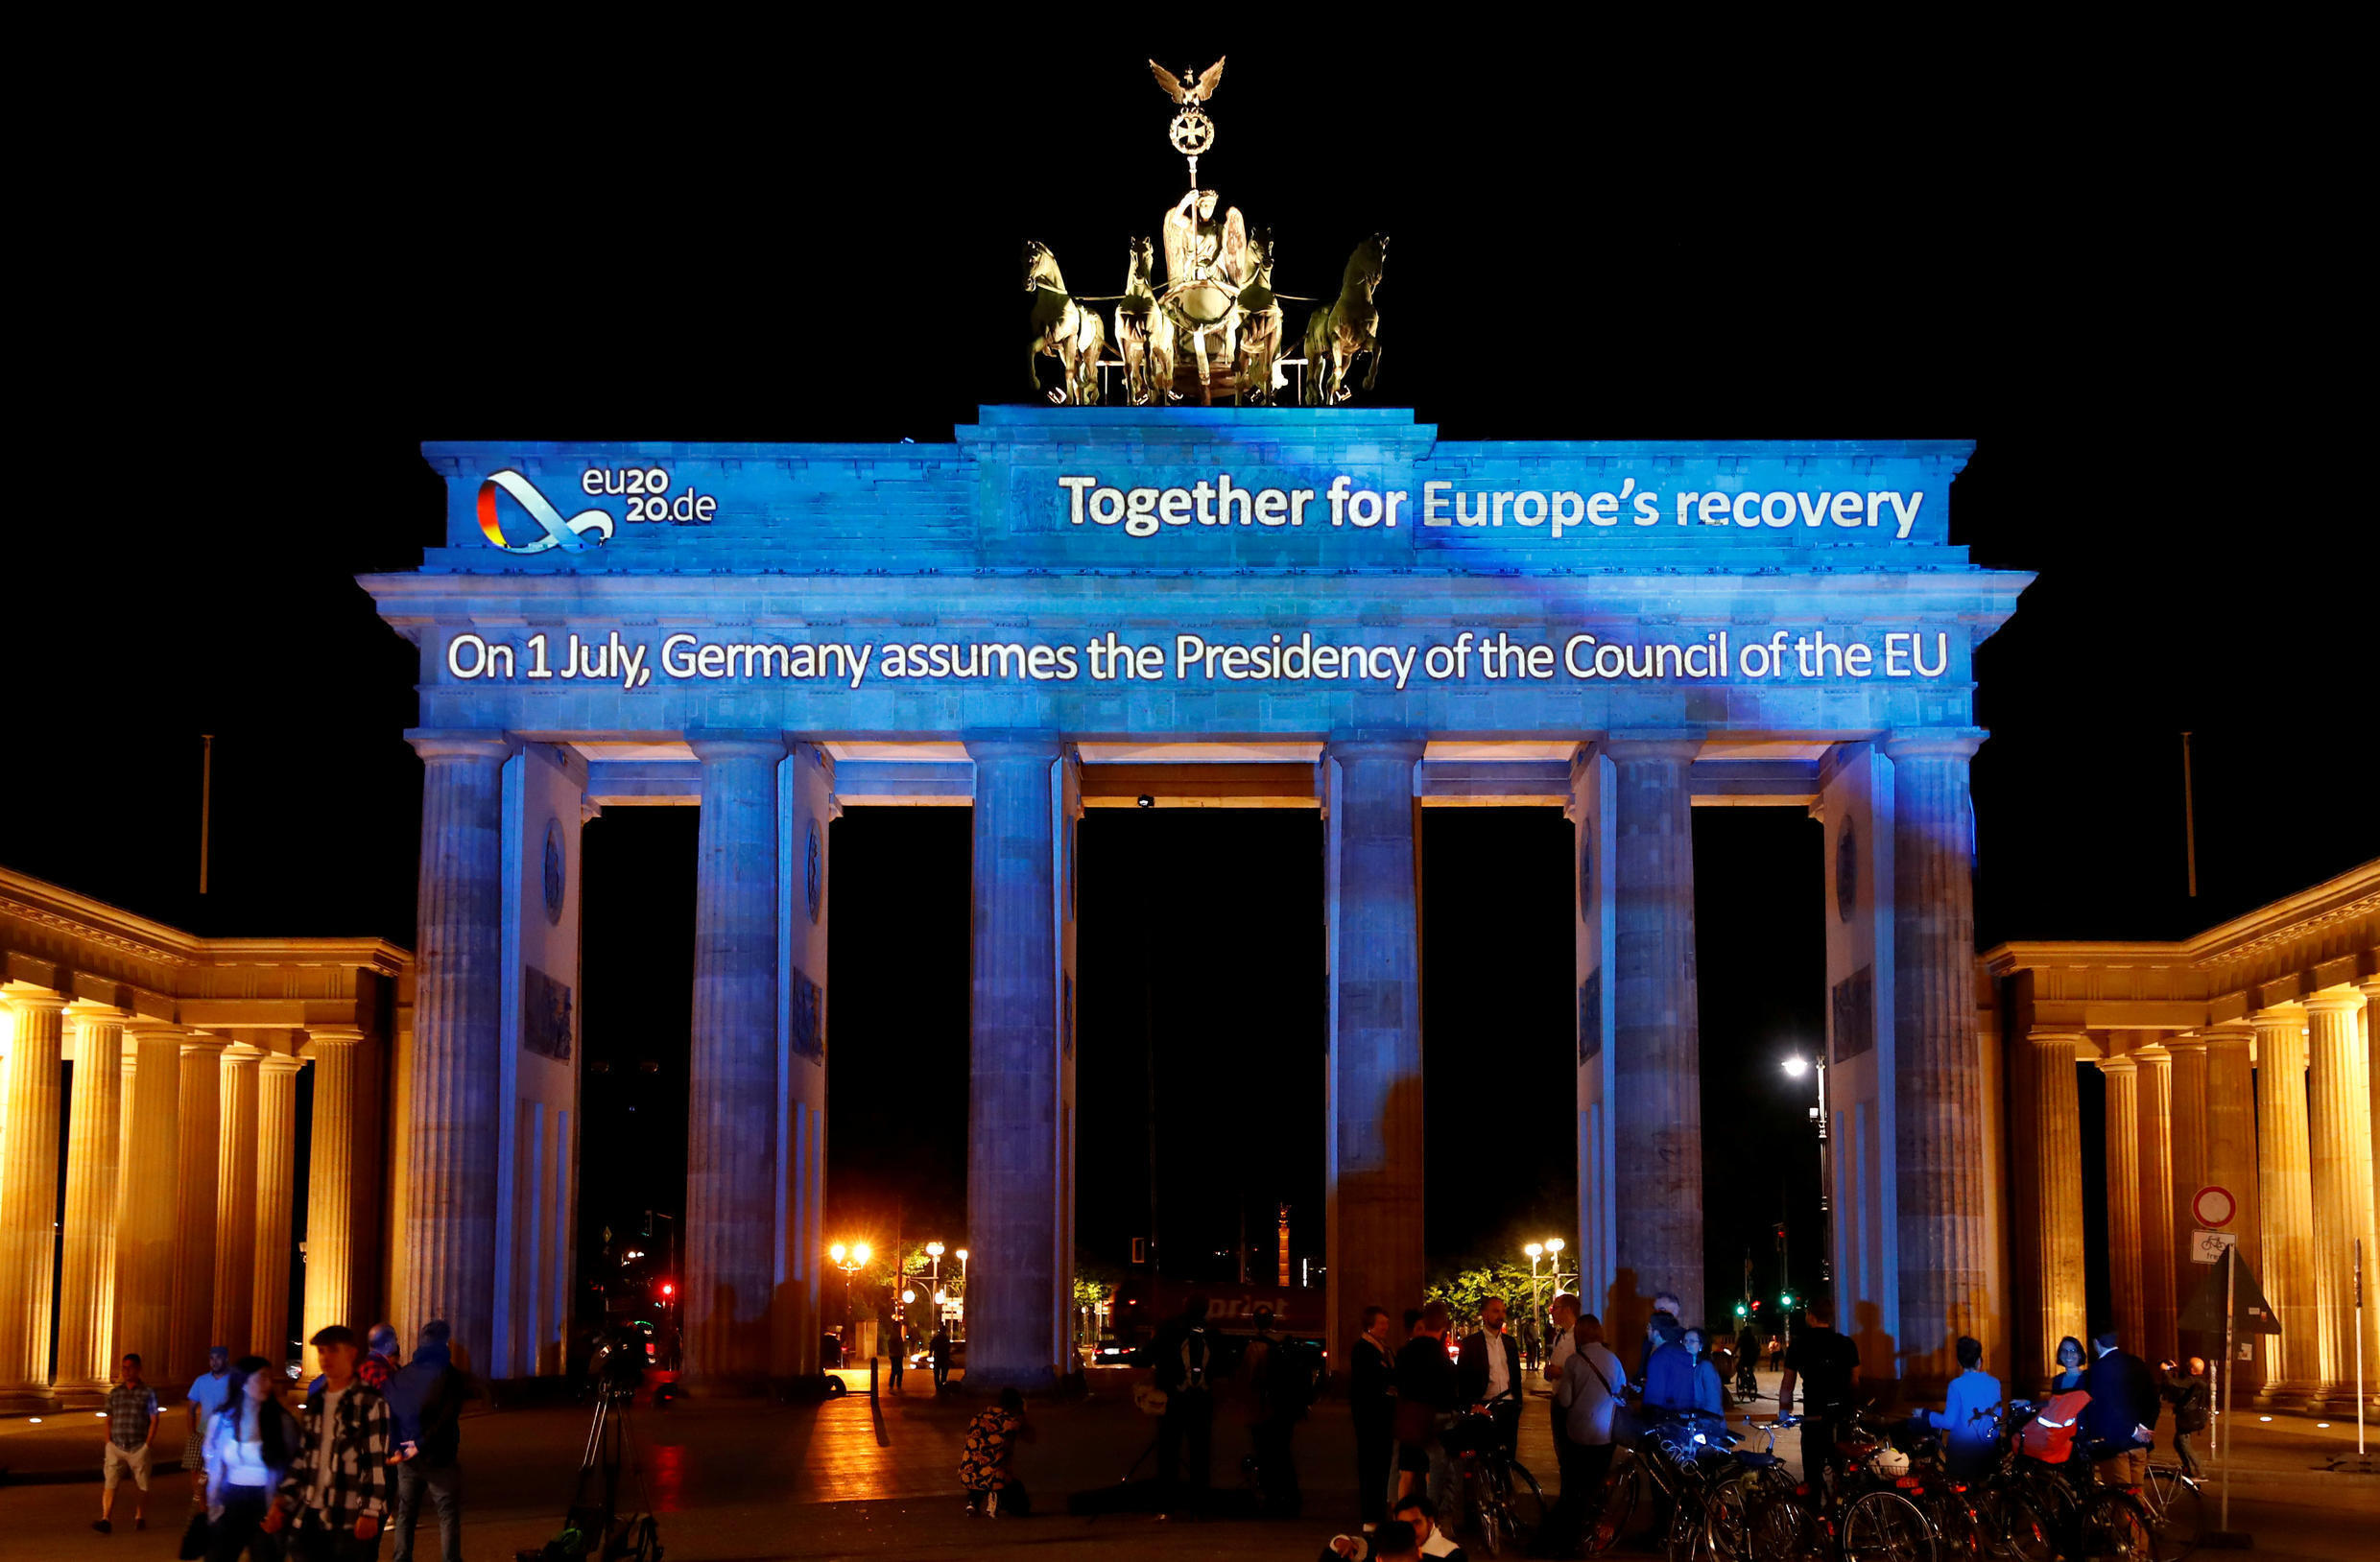 Germany marks the beginning of a six-month presidency of the European Union dedicated to coronavirus recovery with projections on the Brandenburg Gate in Berlin, 30 June 2020.